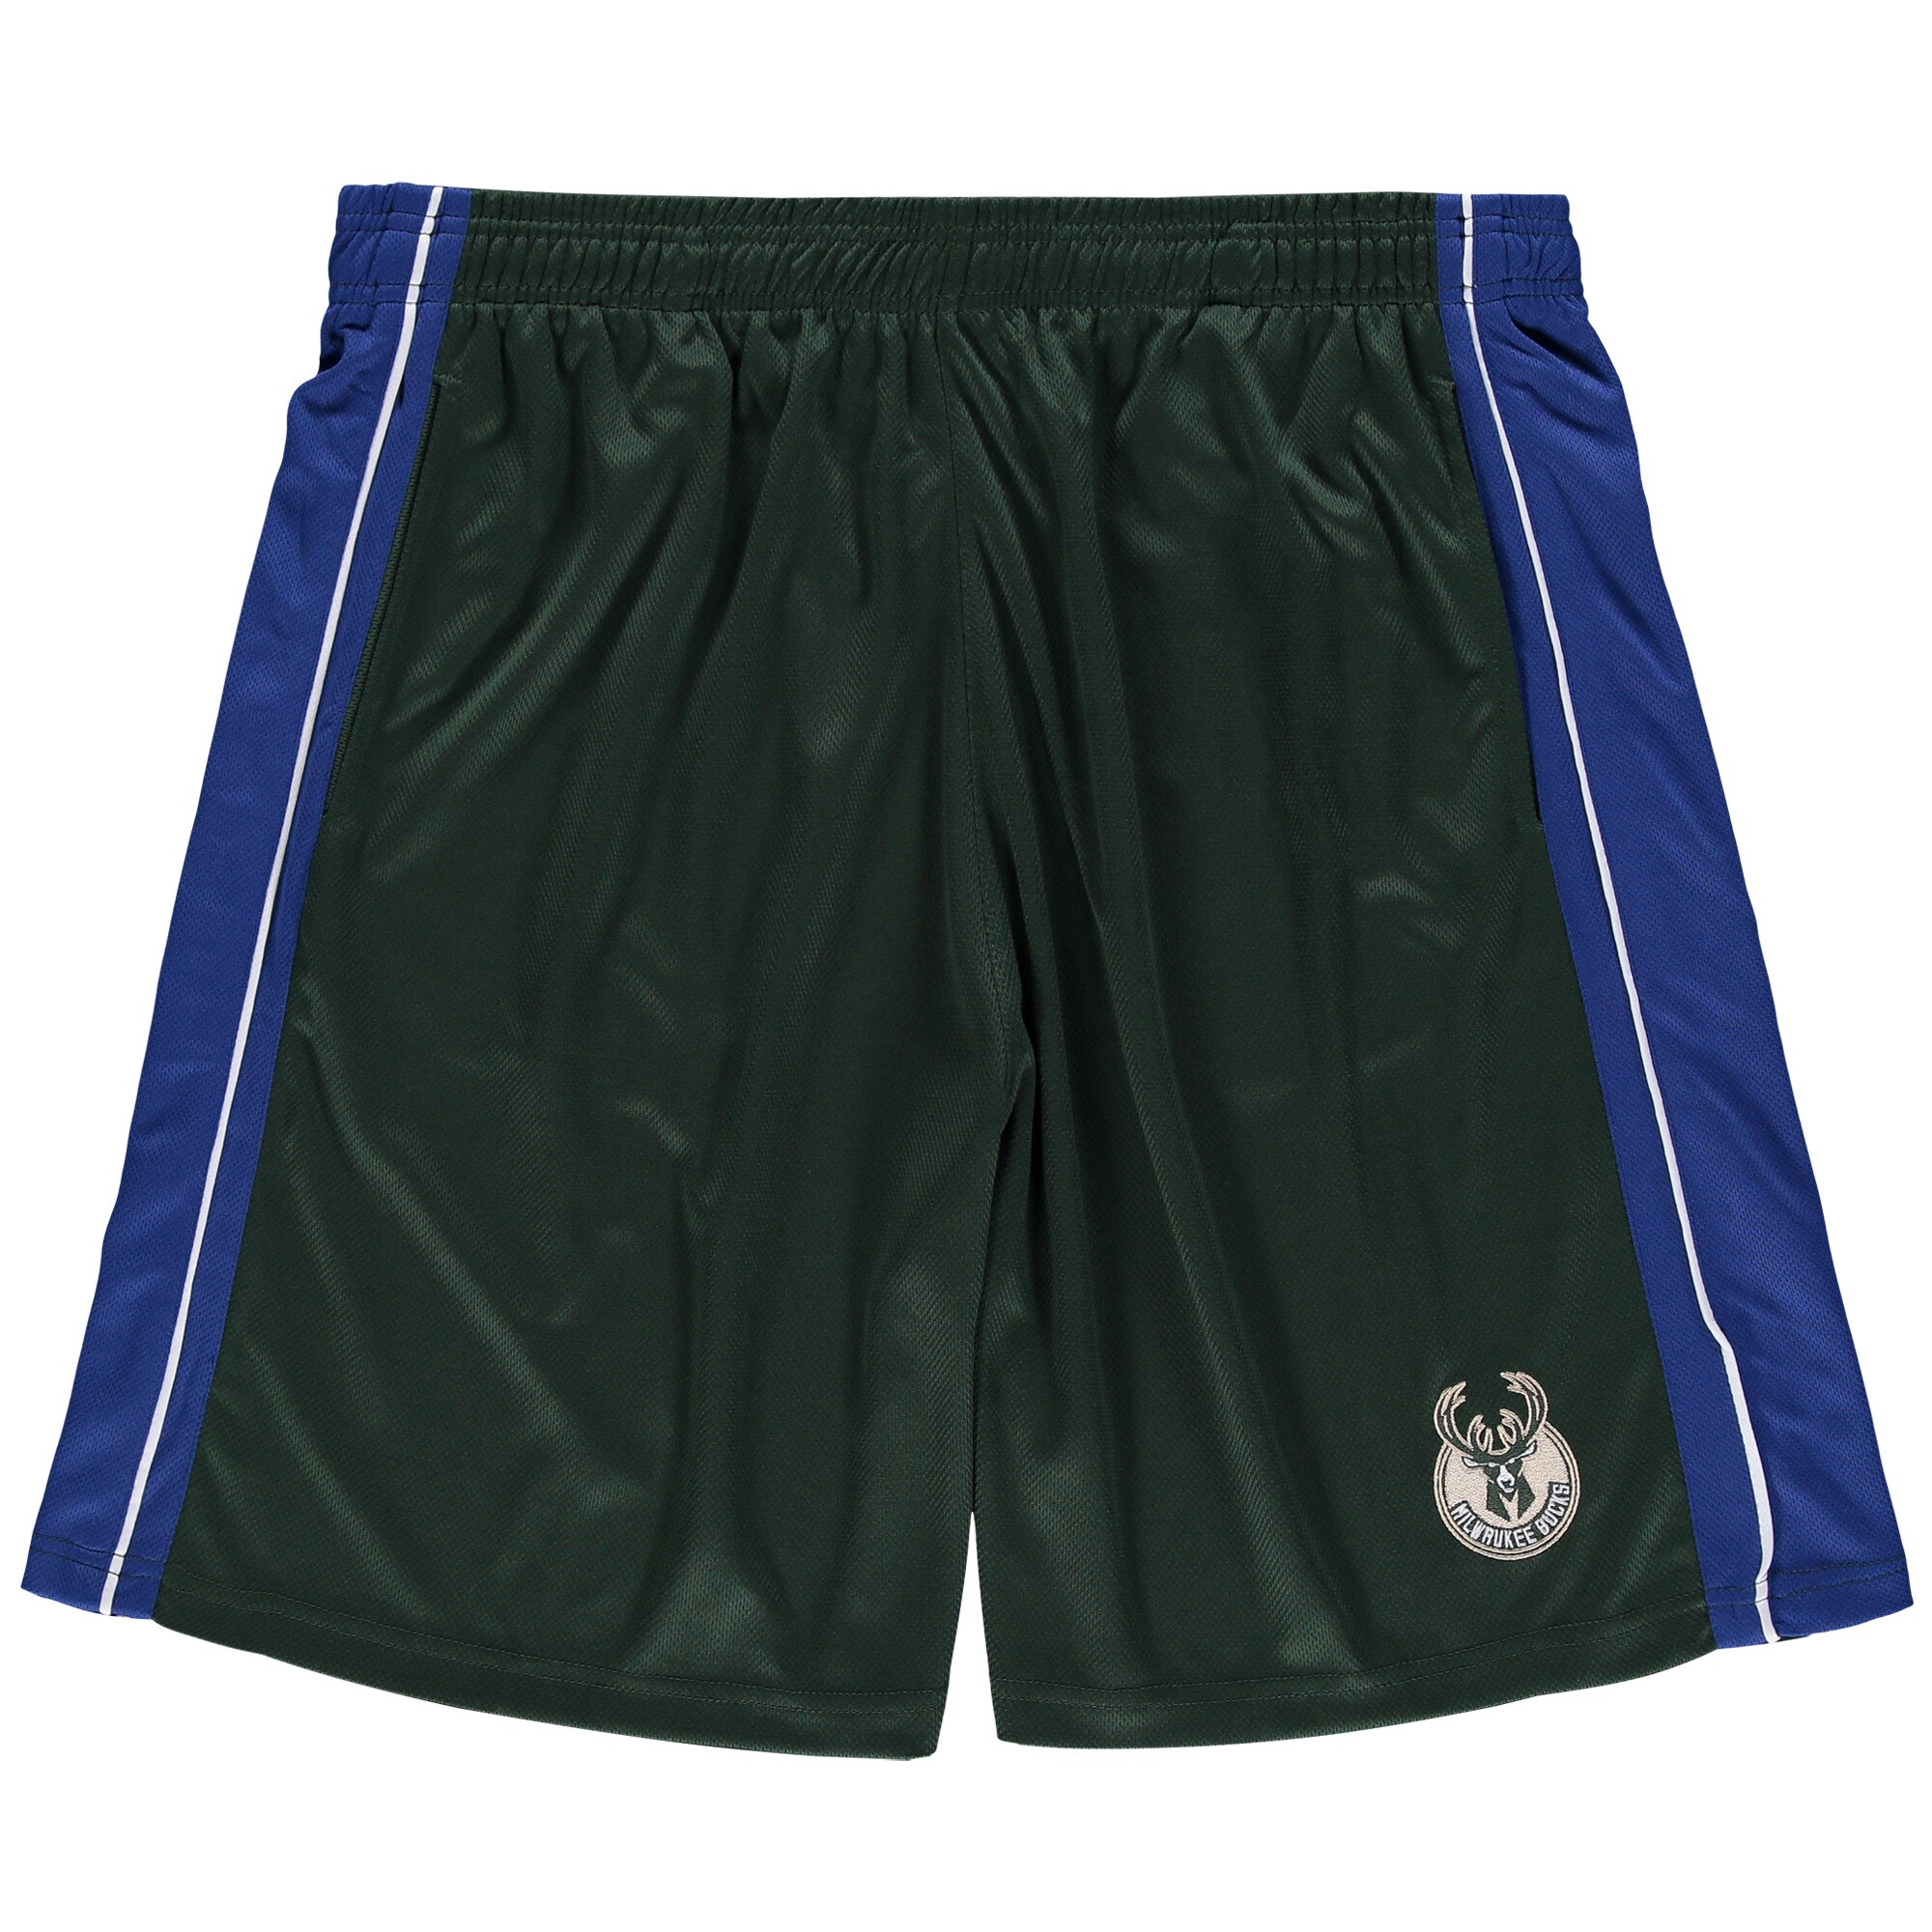 Milwaukee Bucks Majestic Big & Tall Birdseye Shorts - Hunter Green/Royal